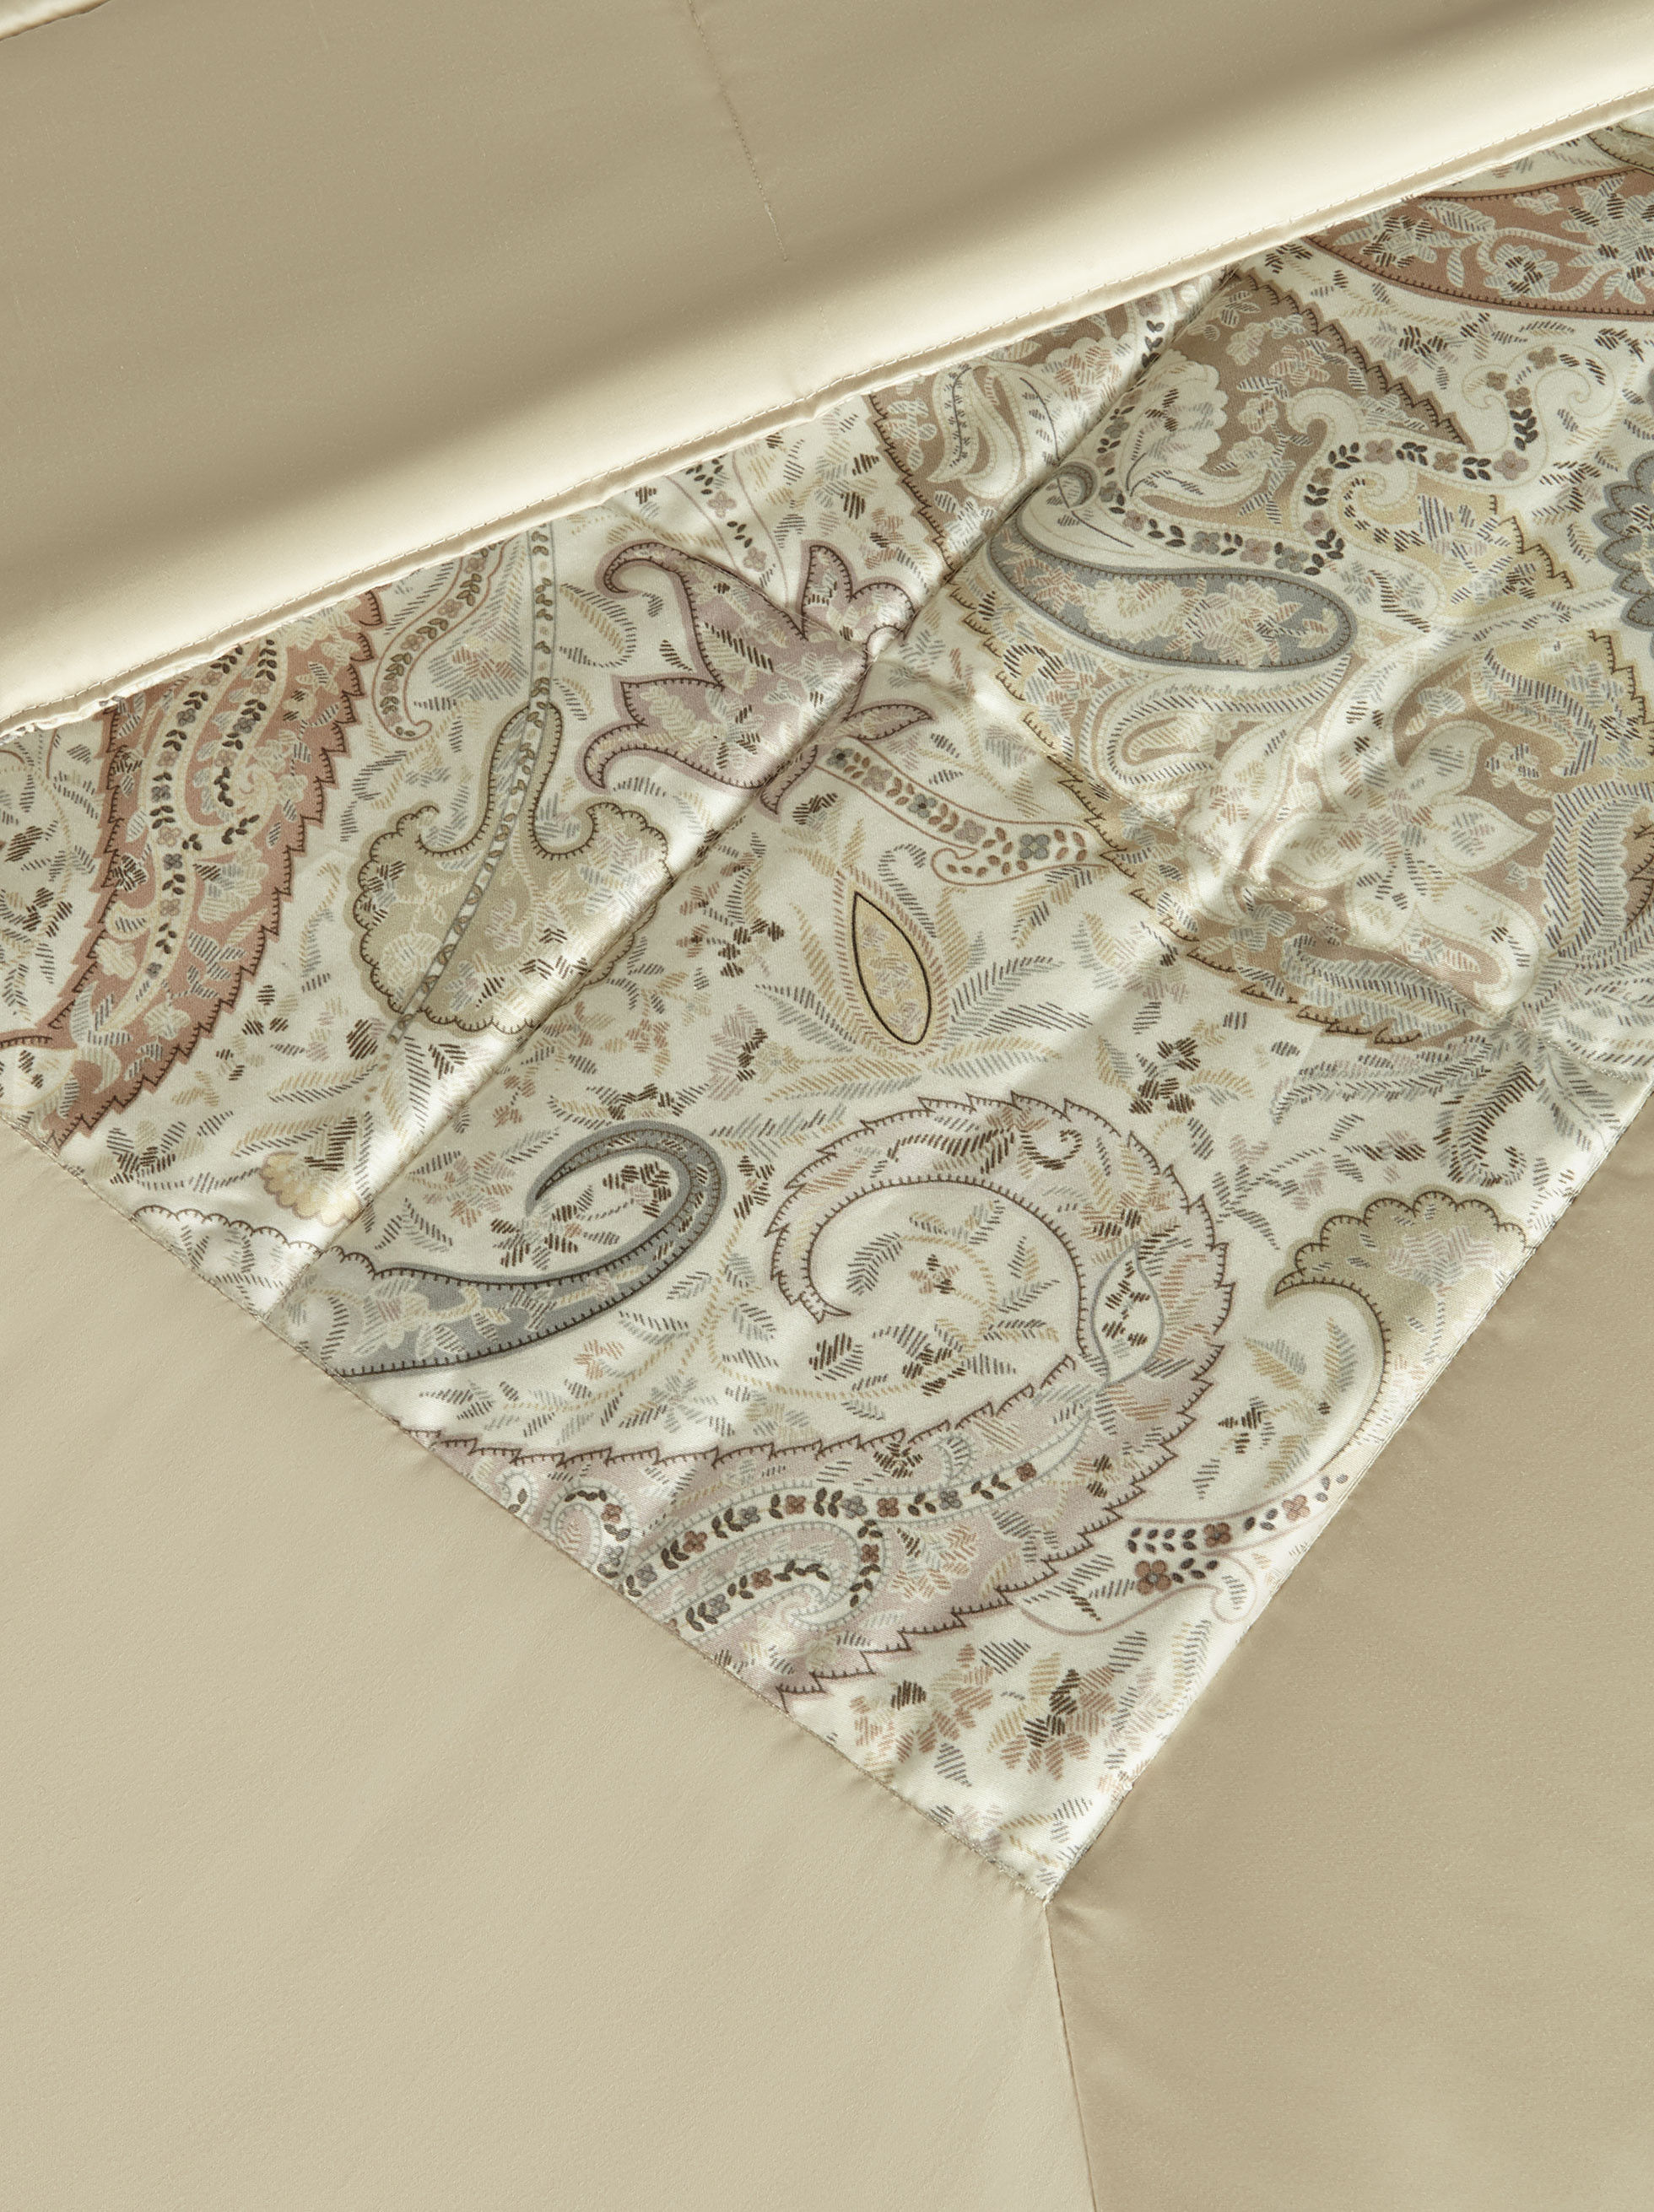 SATIN QUILT WITH PAISLEY PRINT